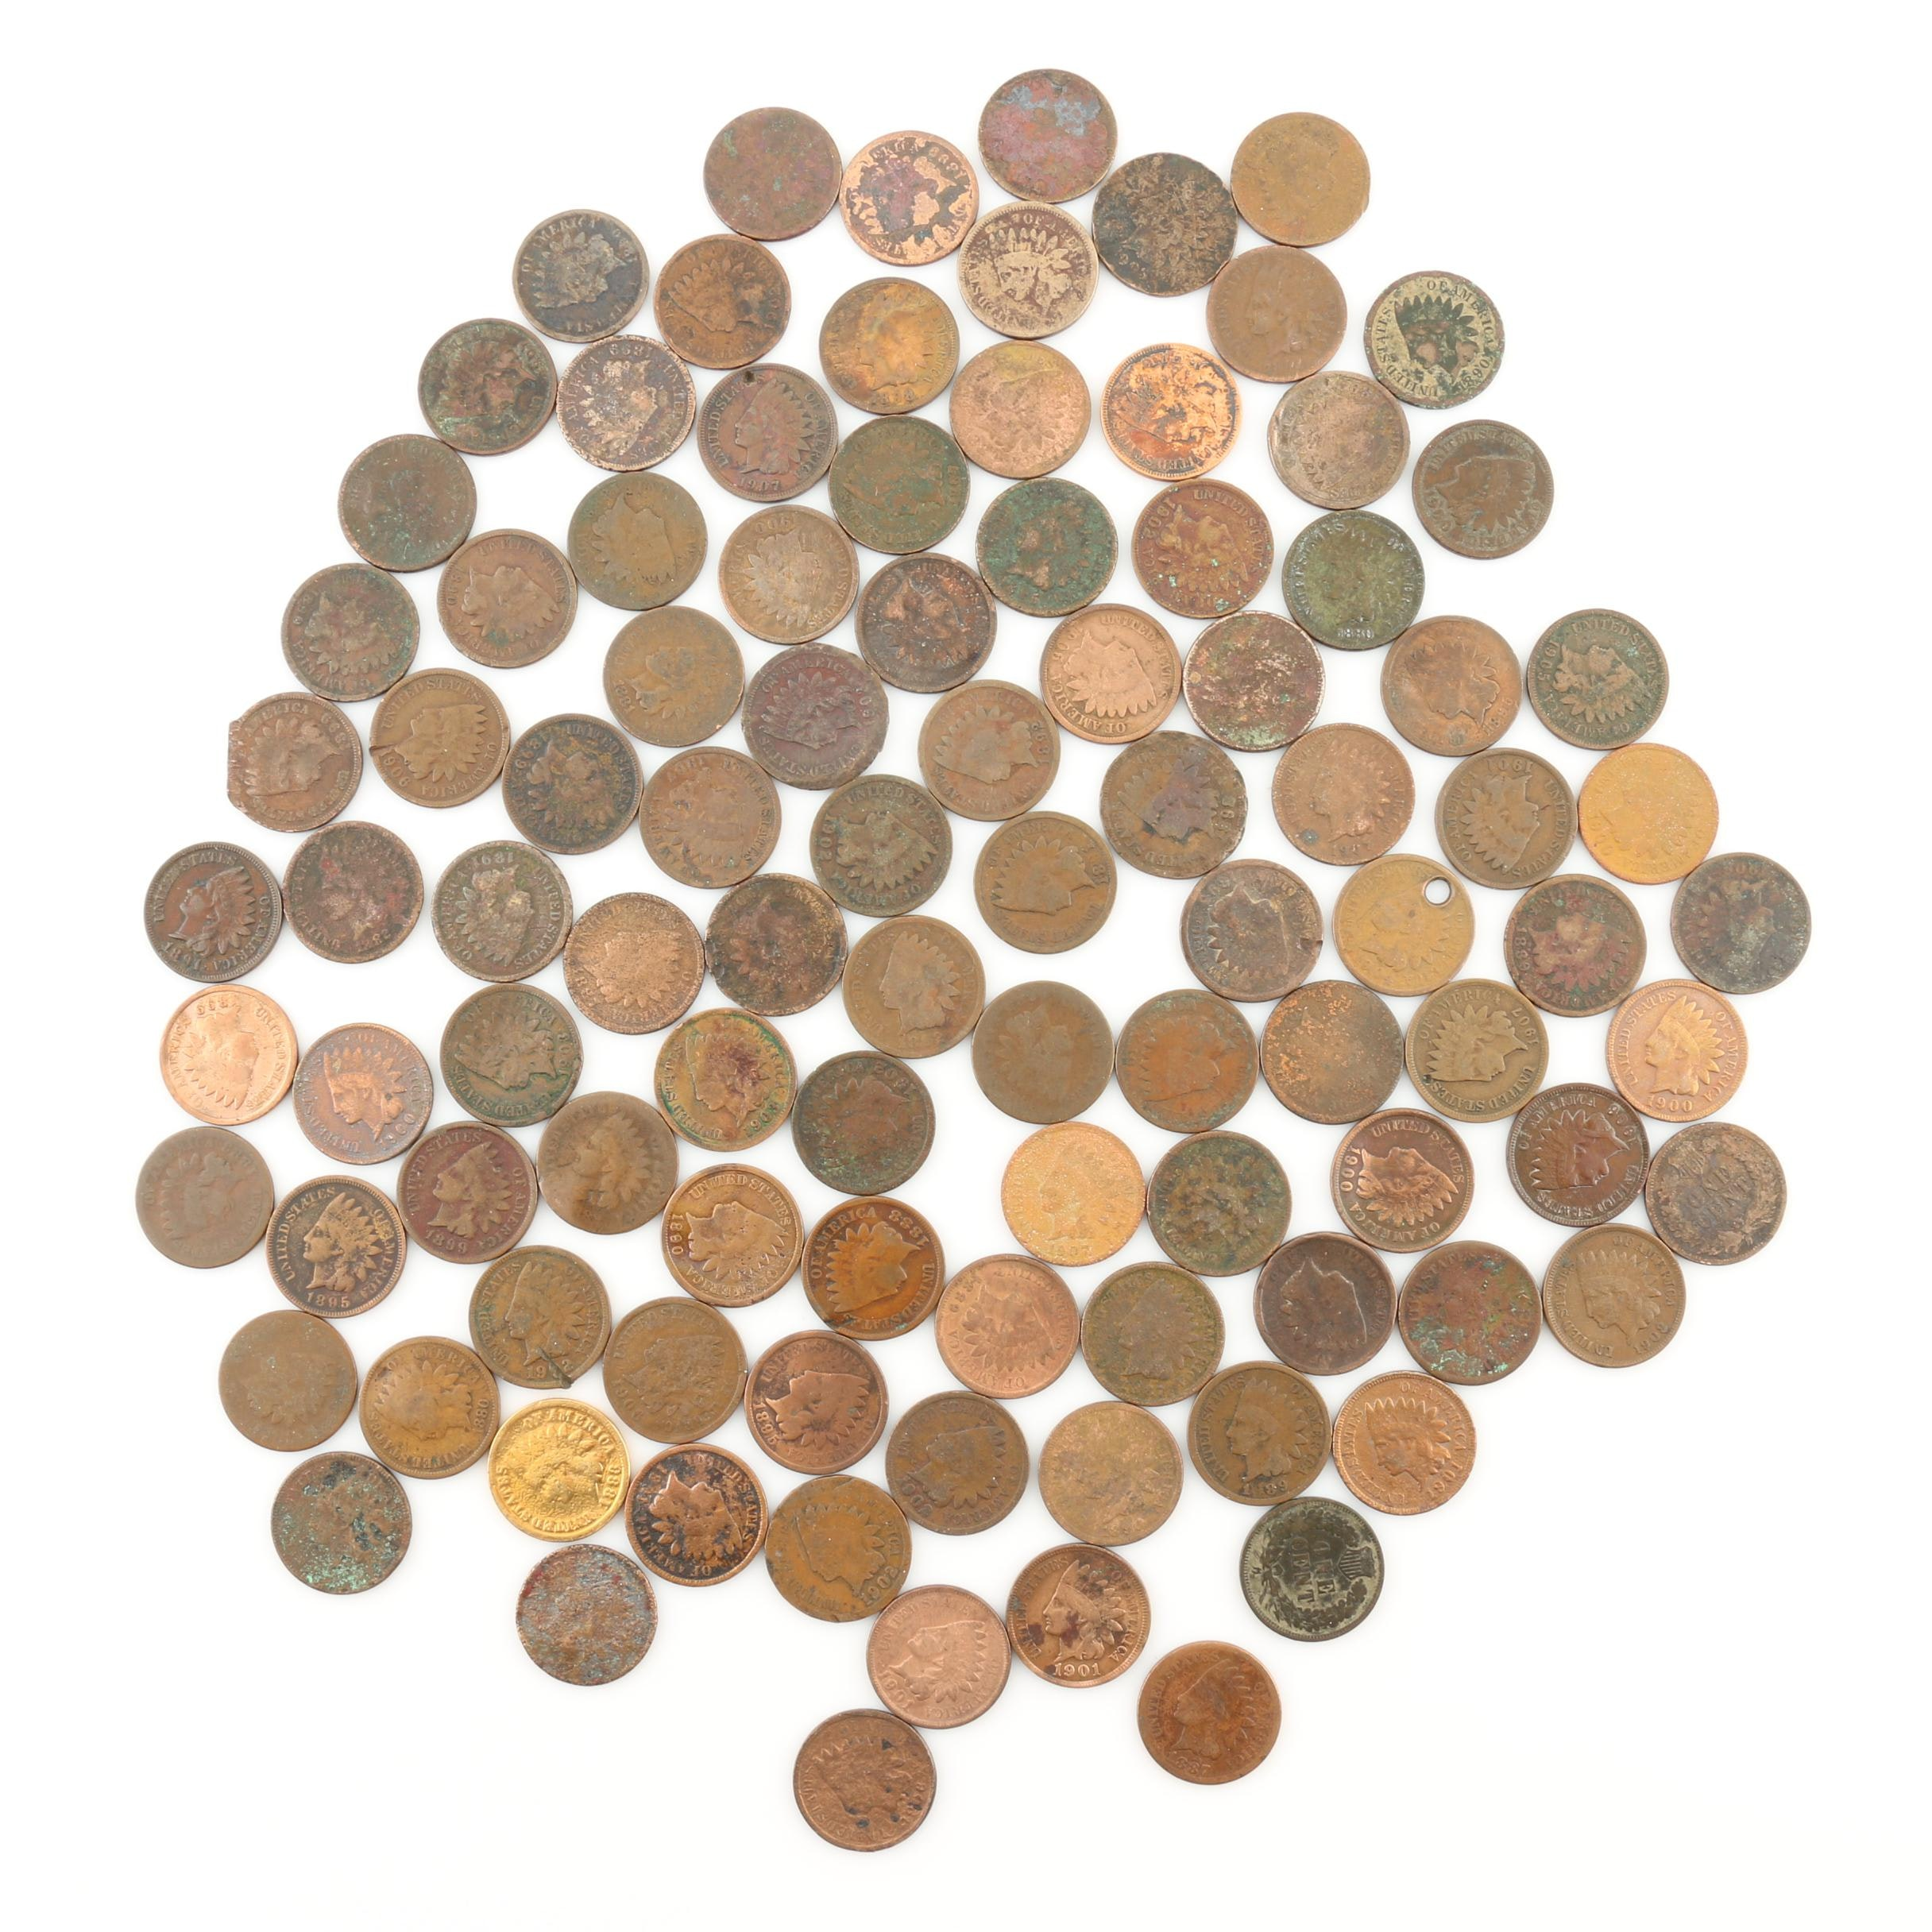 Group of 100 Indian Head Cents